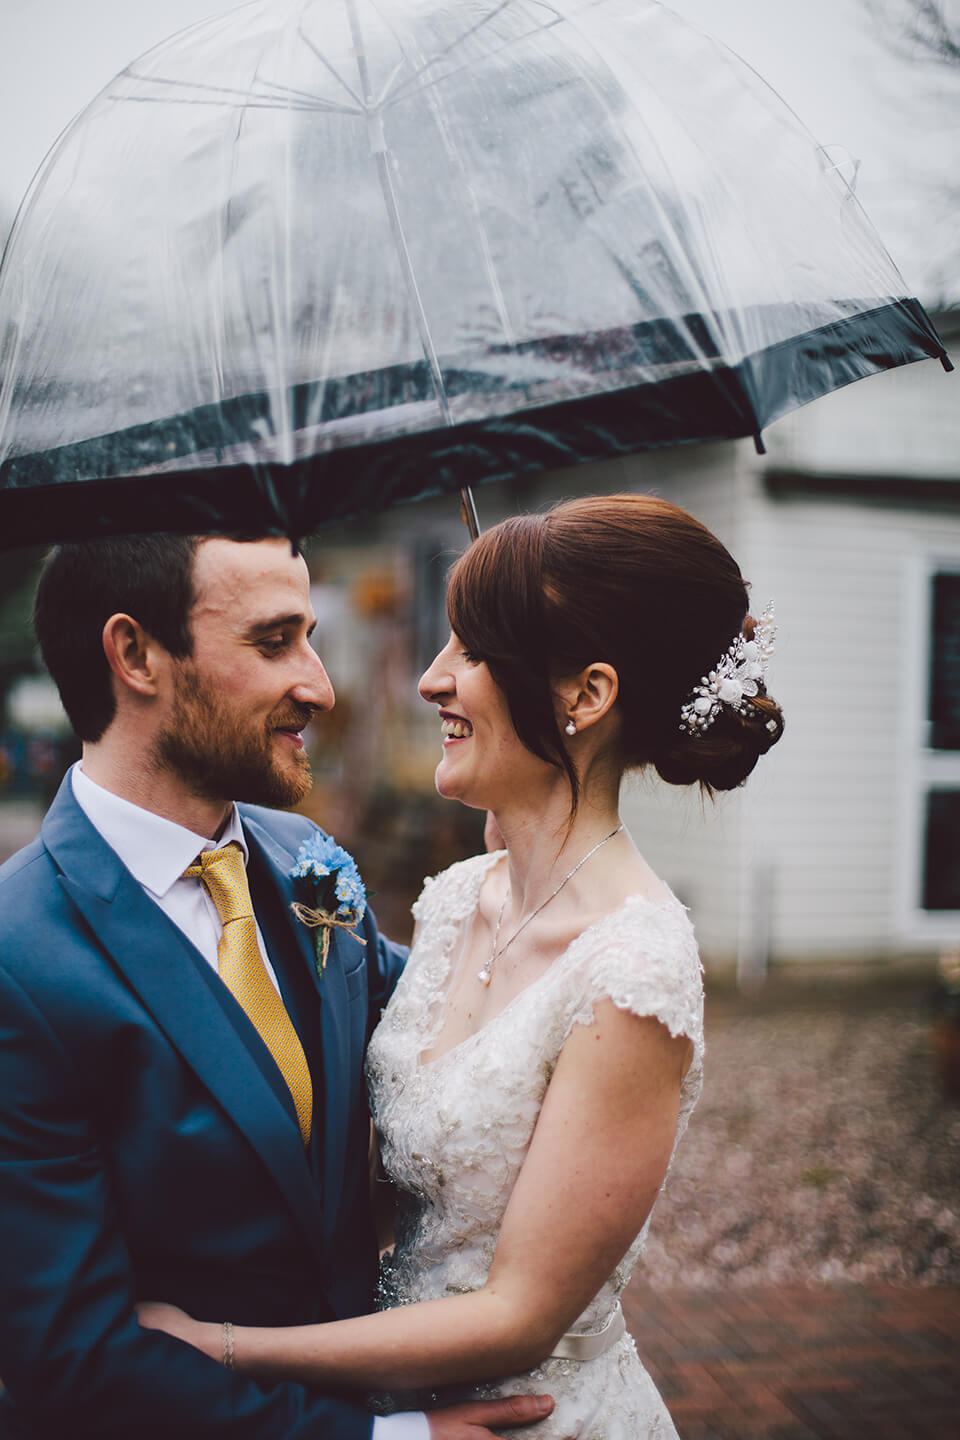 10 Tips For Awesome Photos Of Your Wedding